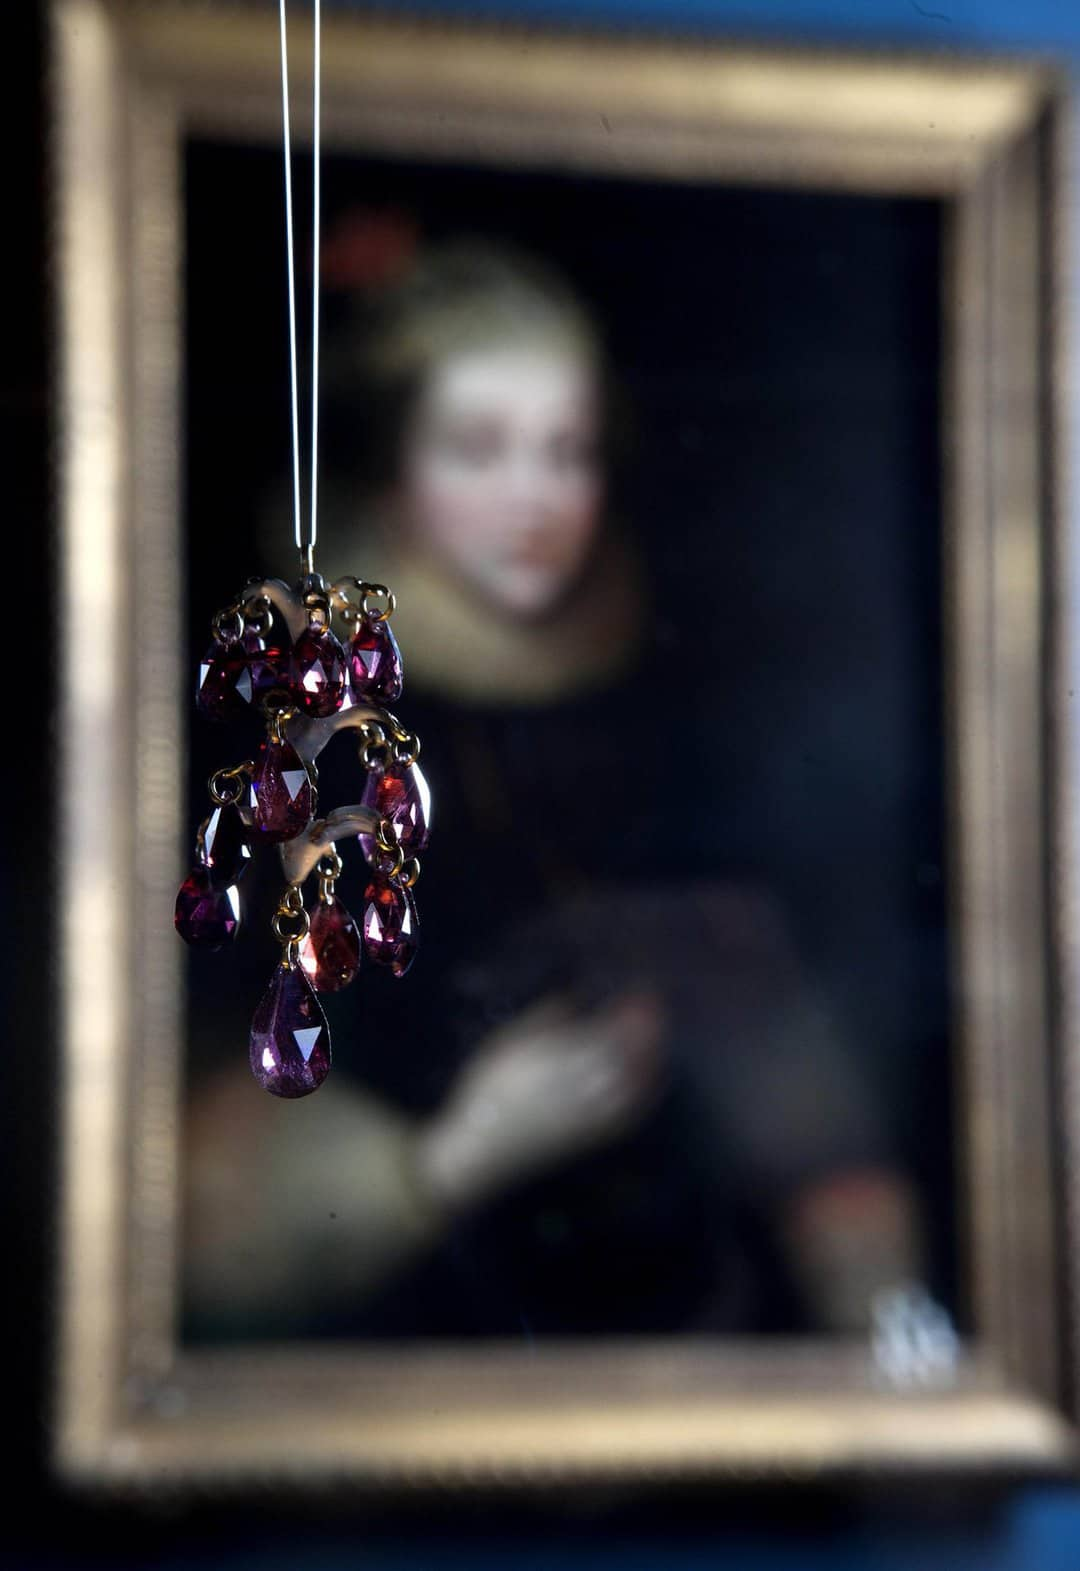 A garnet pendant hangs in front of a portrait of Elizabeth Wriothesley wearing the kind of jewellery on display.